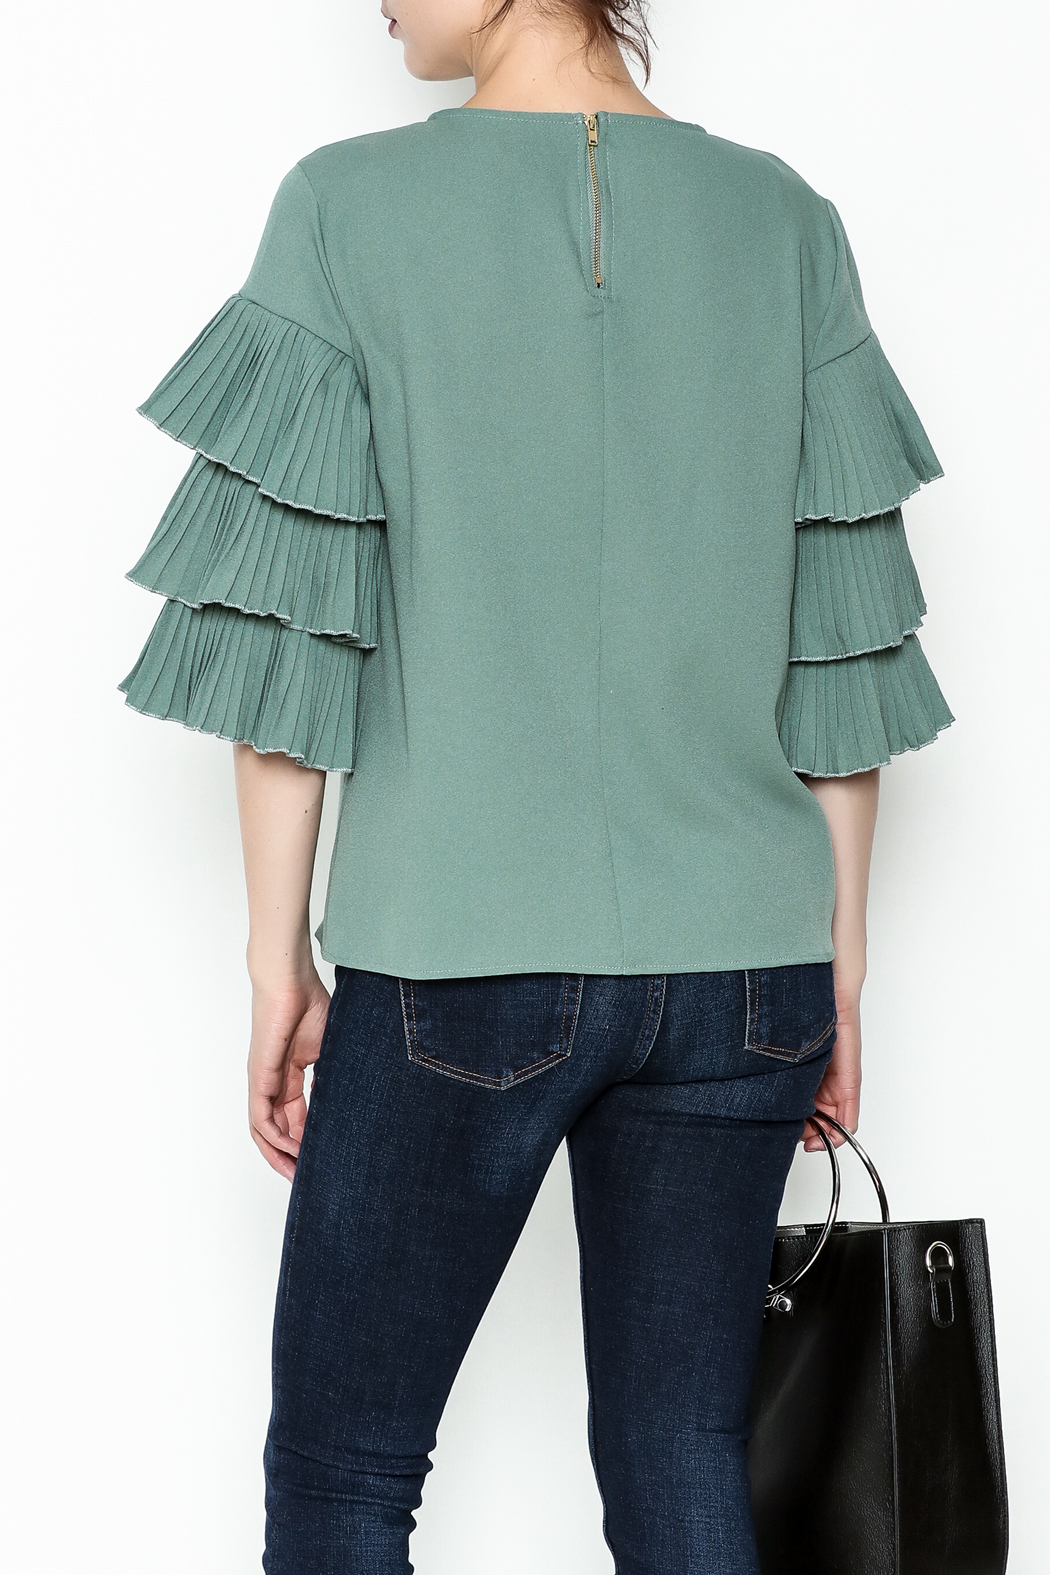 on12th Ruffle Sleeve Blouse - Back Cropped Image